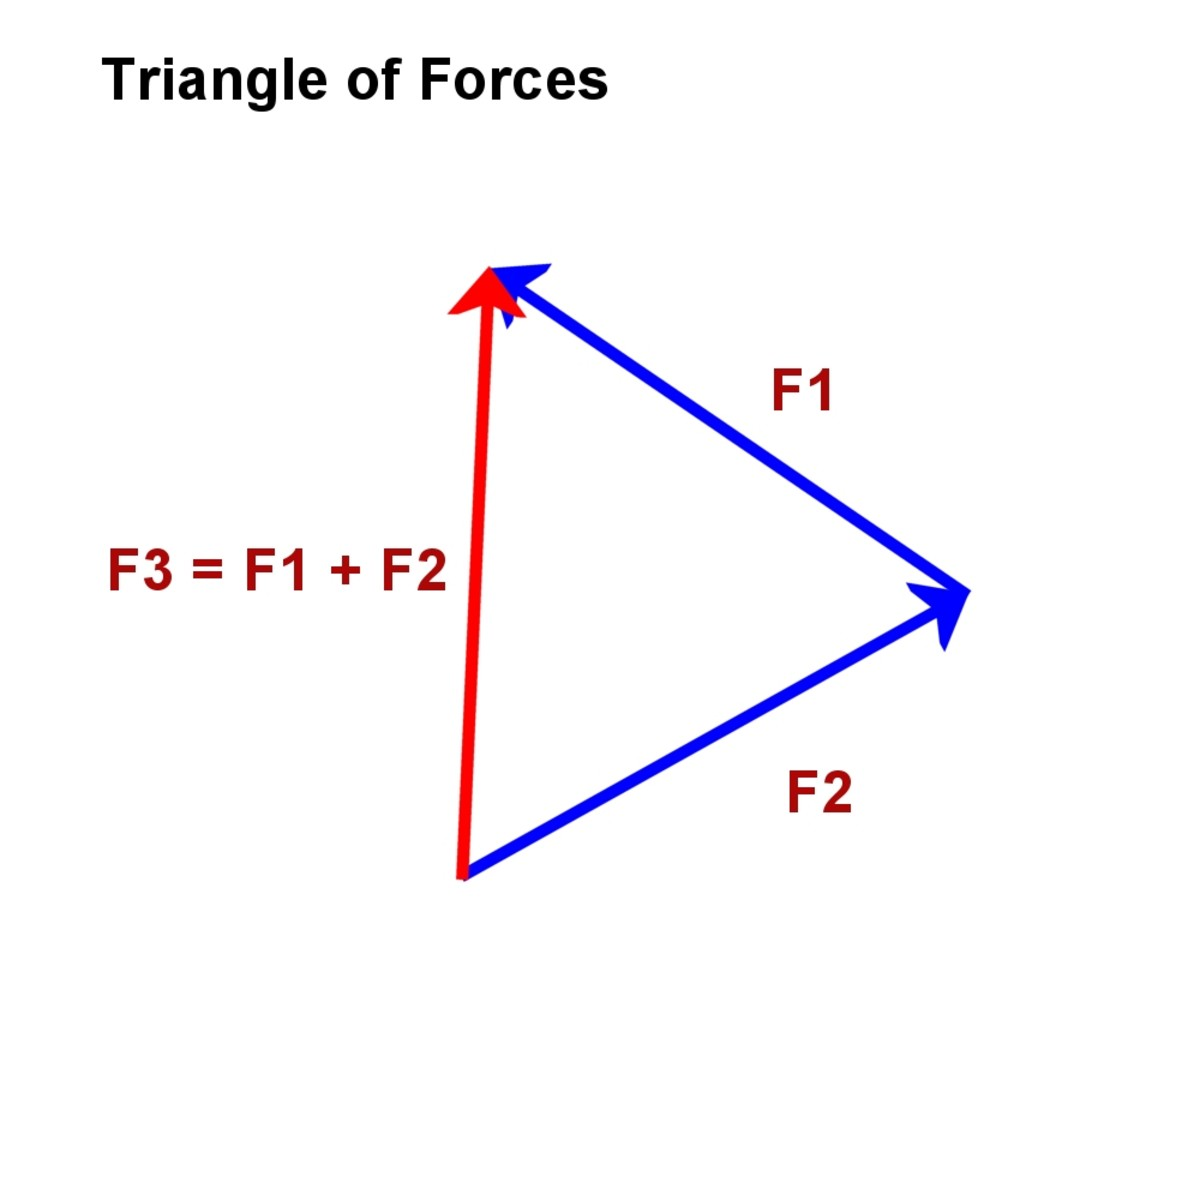 triangle of forces Introduction to triangle law of forces: a body may be subjected to more than one force at the same time suppose two equal forces are acting on the body simultaneously in the same direction, the effect is the sum of the two forces.